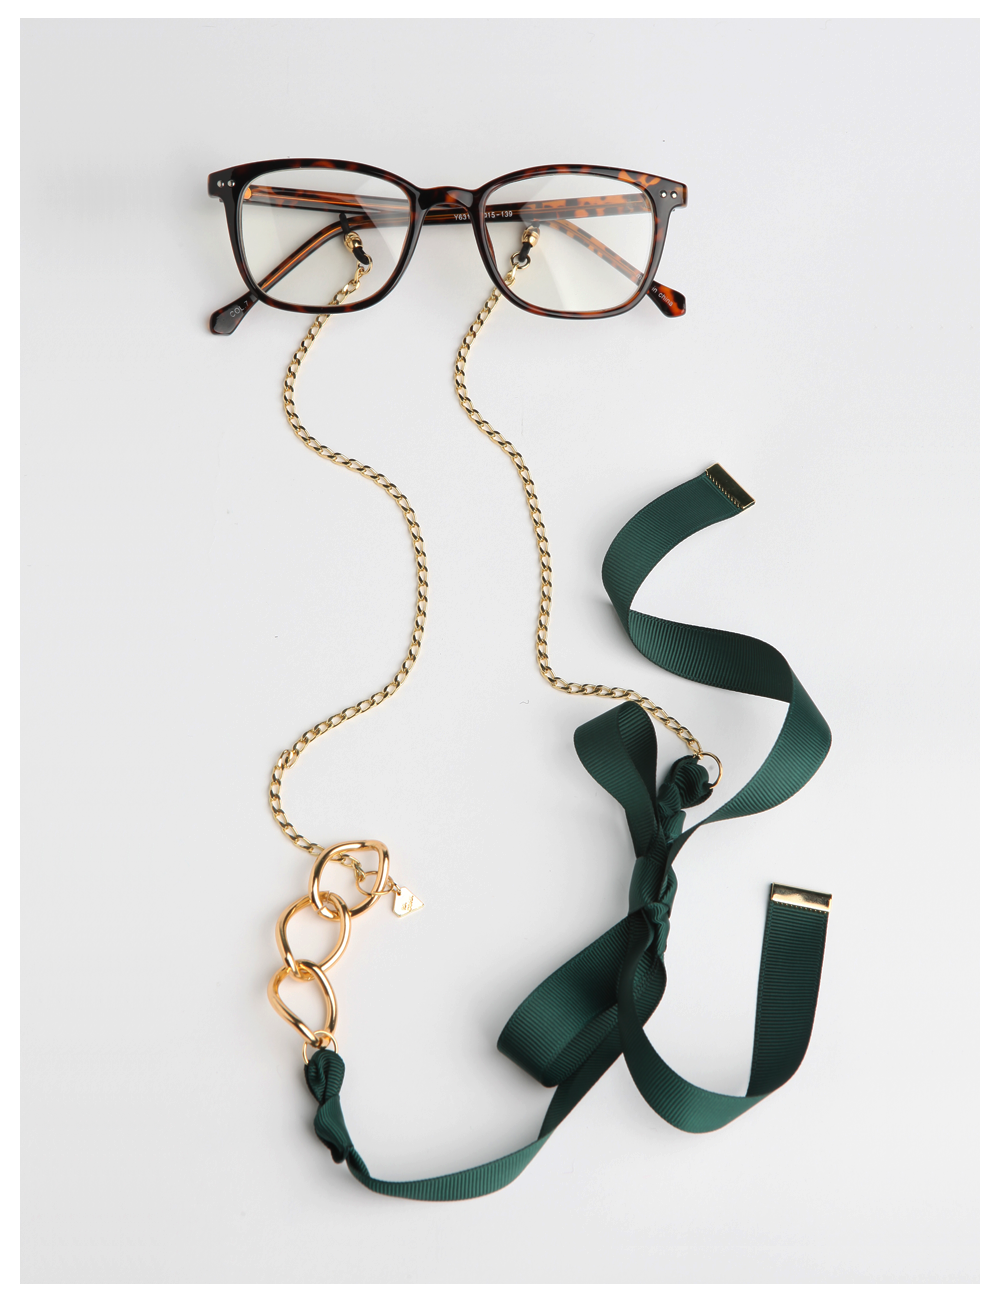 NANA BONNY / deep green_EYE GLASS CHAIN